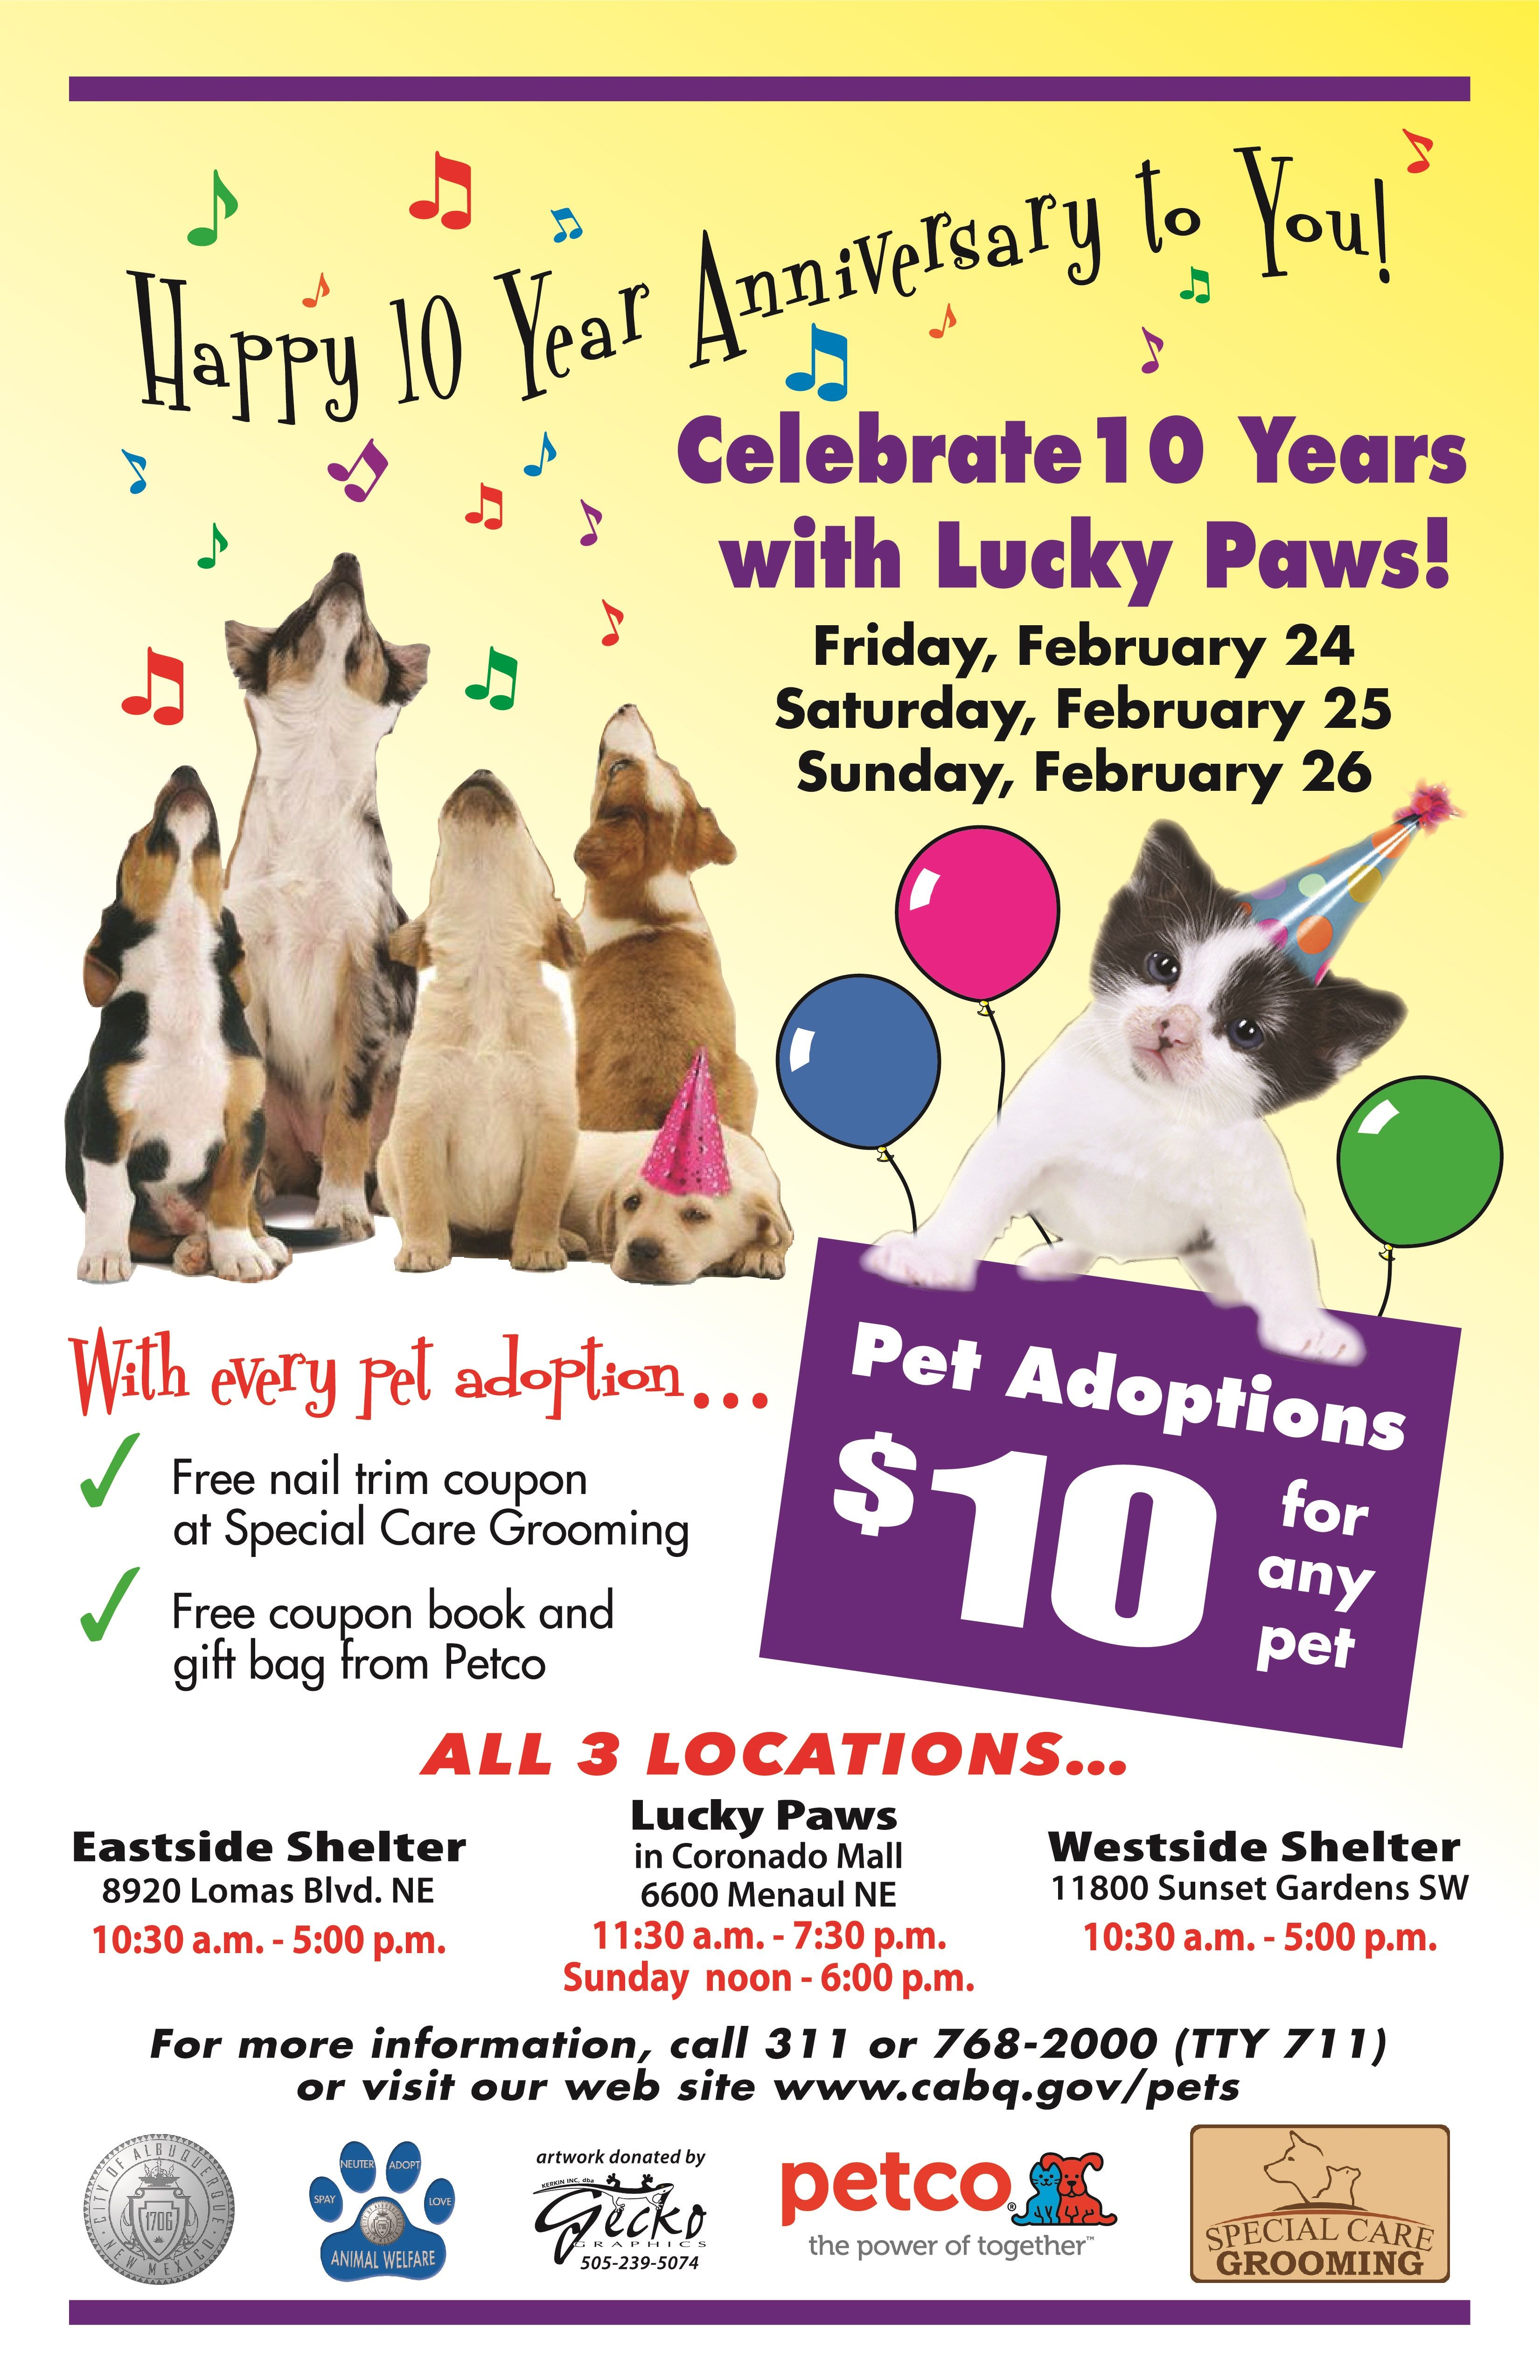 Lucky Paws Celebrates 10 Year Anniversary Come share in